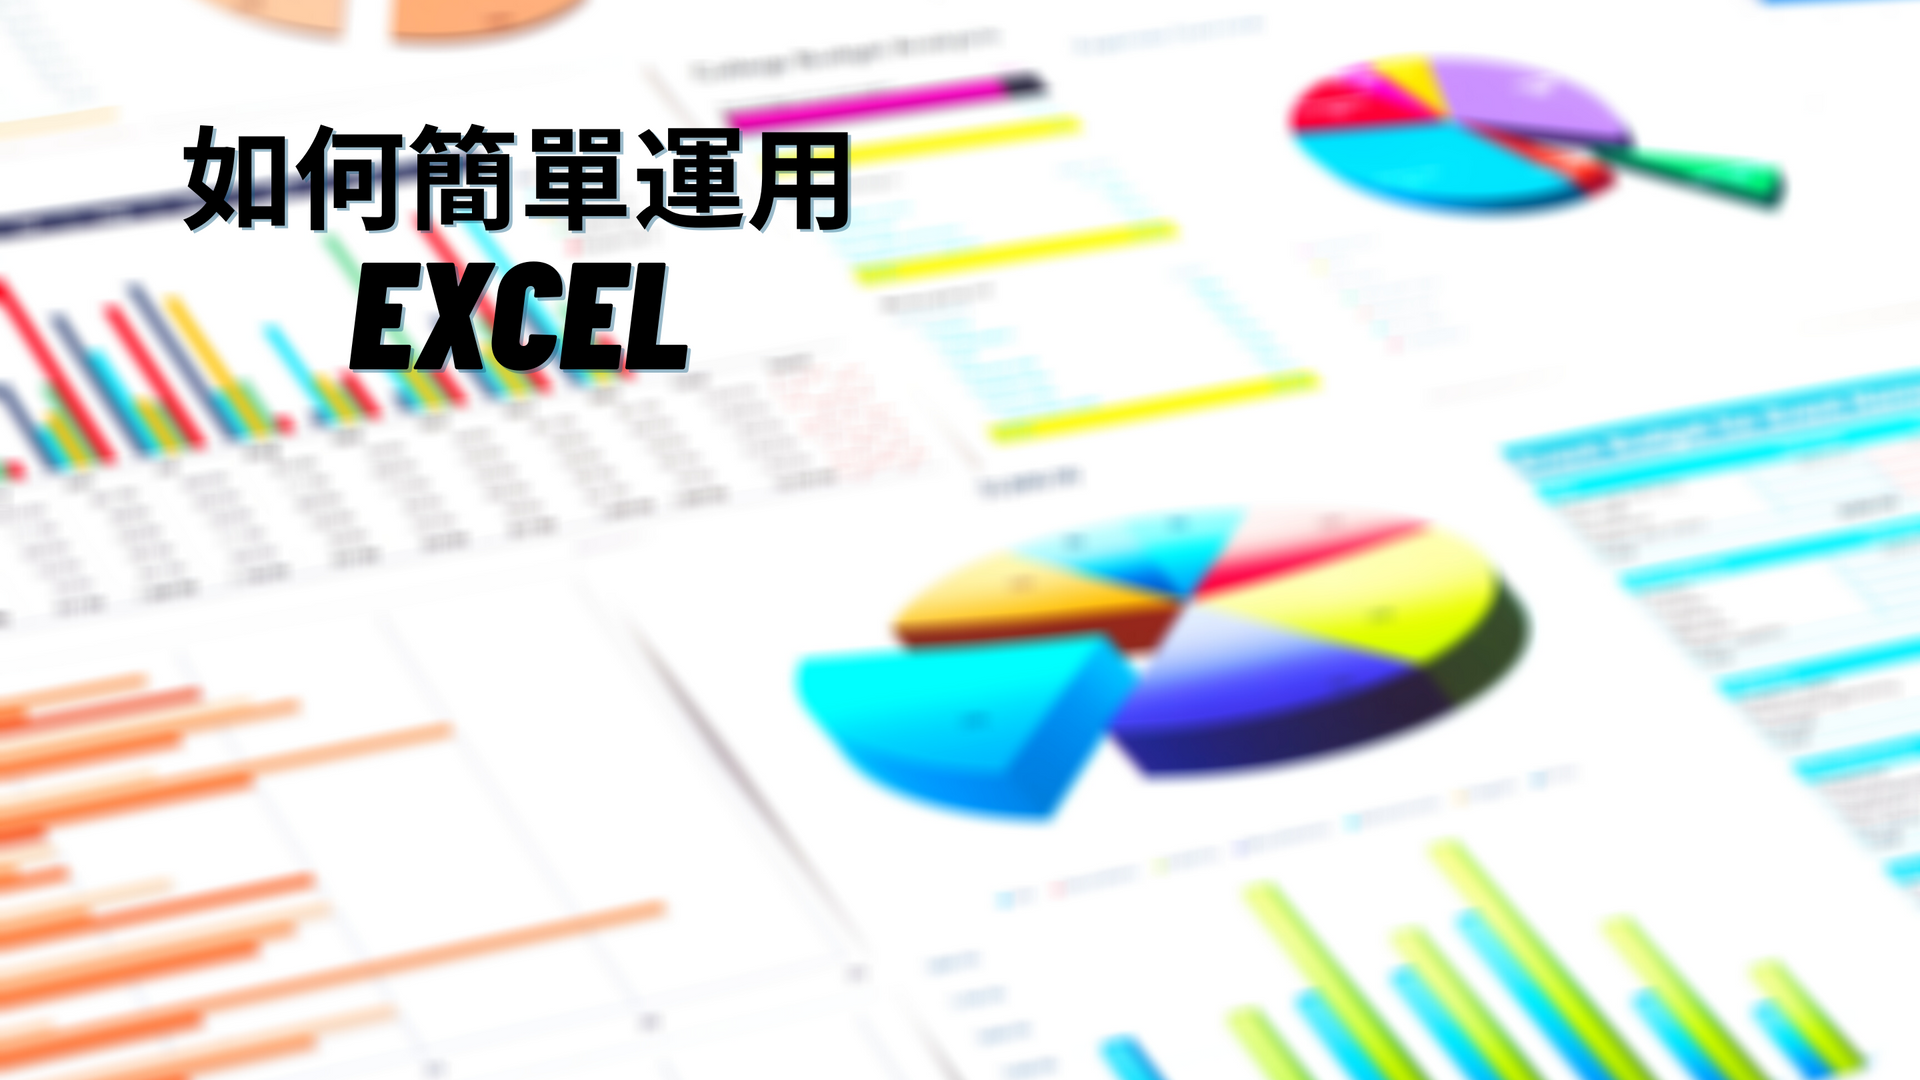 course - 如何簡單運用Excel.png